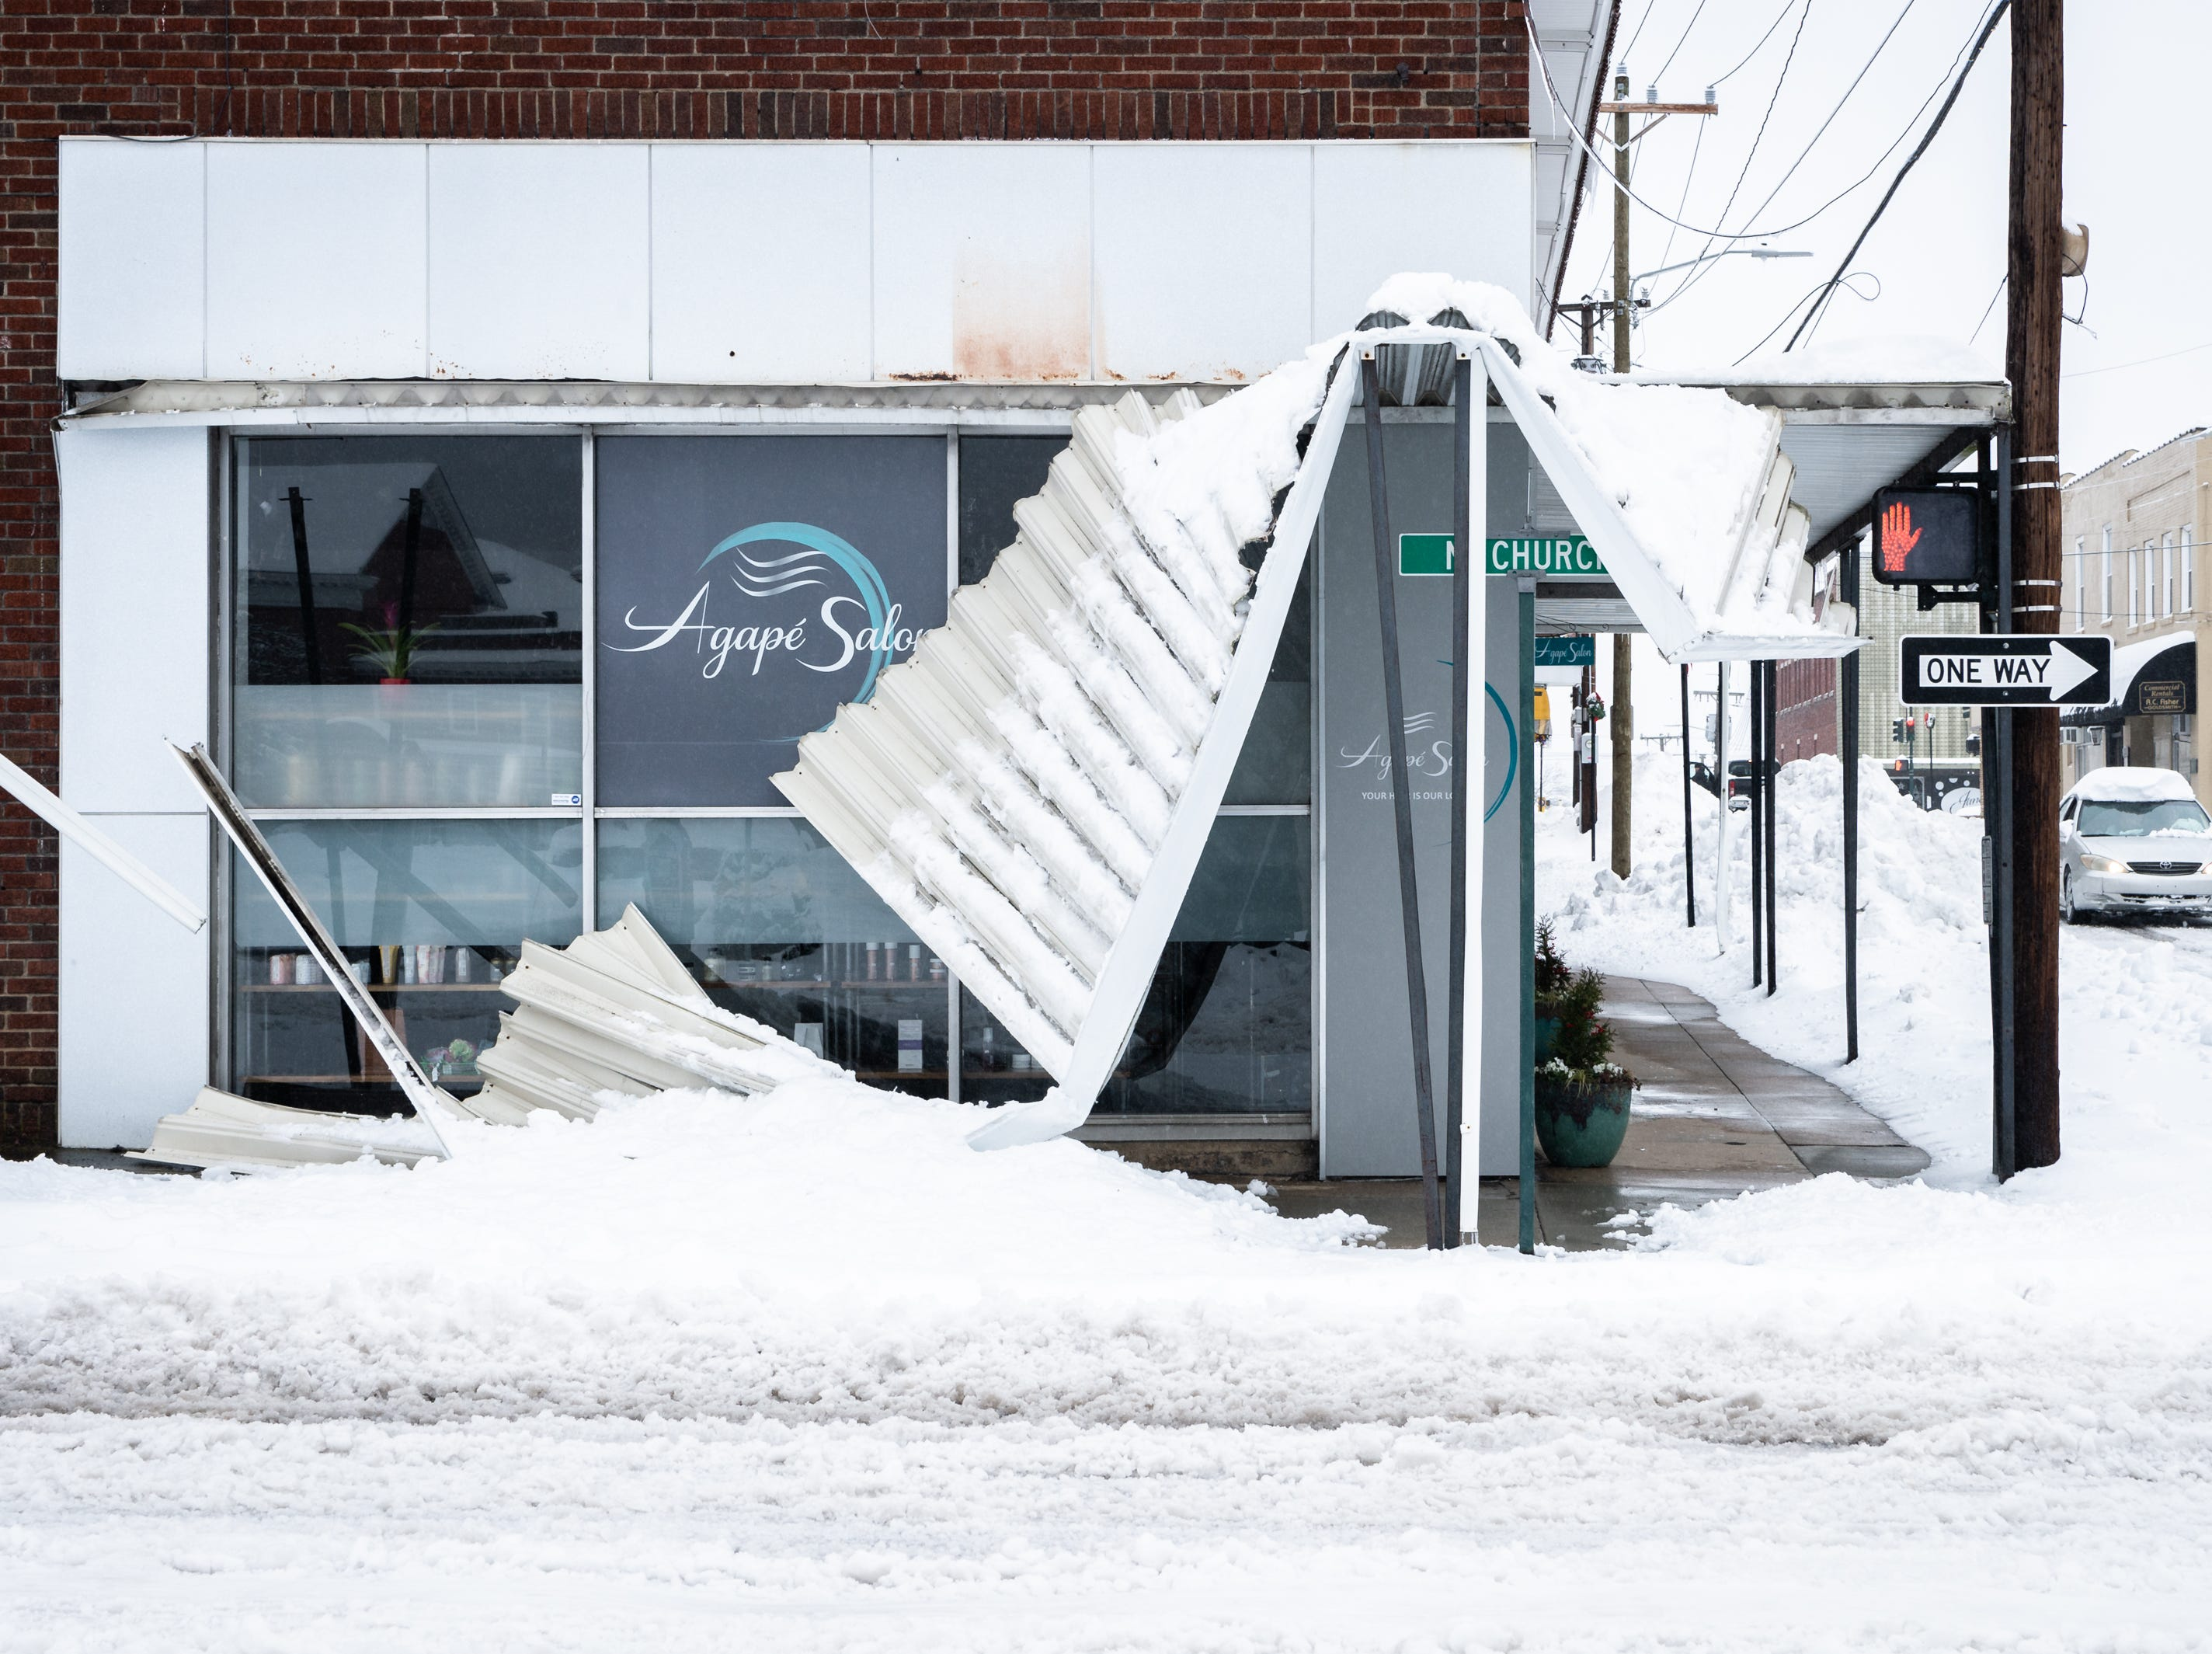 The metal awning of a business on Church Street in Hendersonville collapsed under the weight of snow after a night of heavy snowfall, accumulating 10-11 inches Dec. 9, 2018. At 5 p.m there were nearly 9,600 power outages.